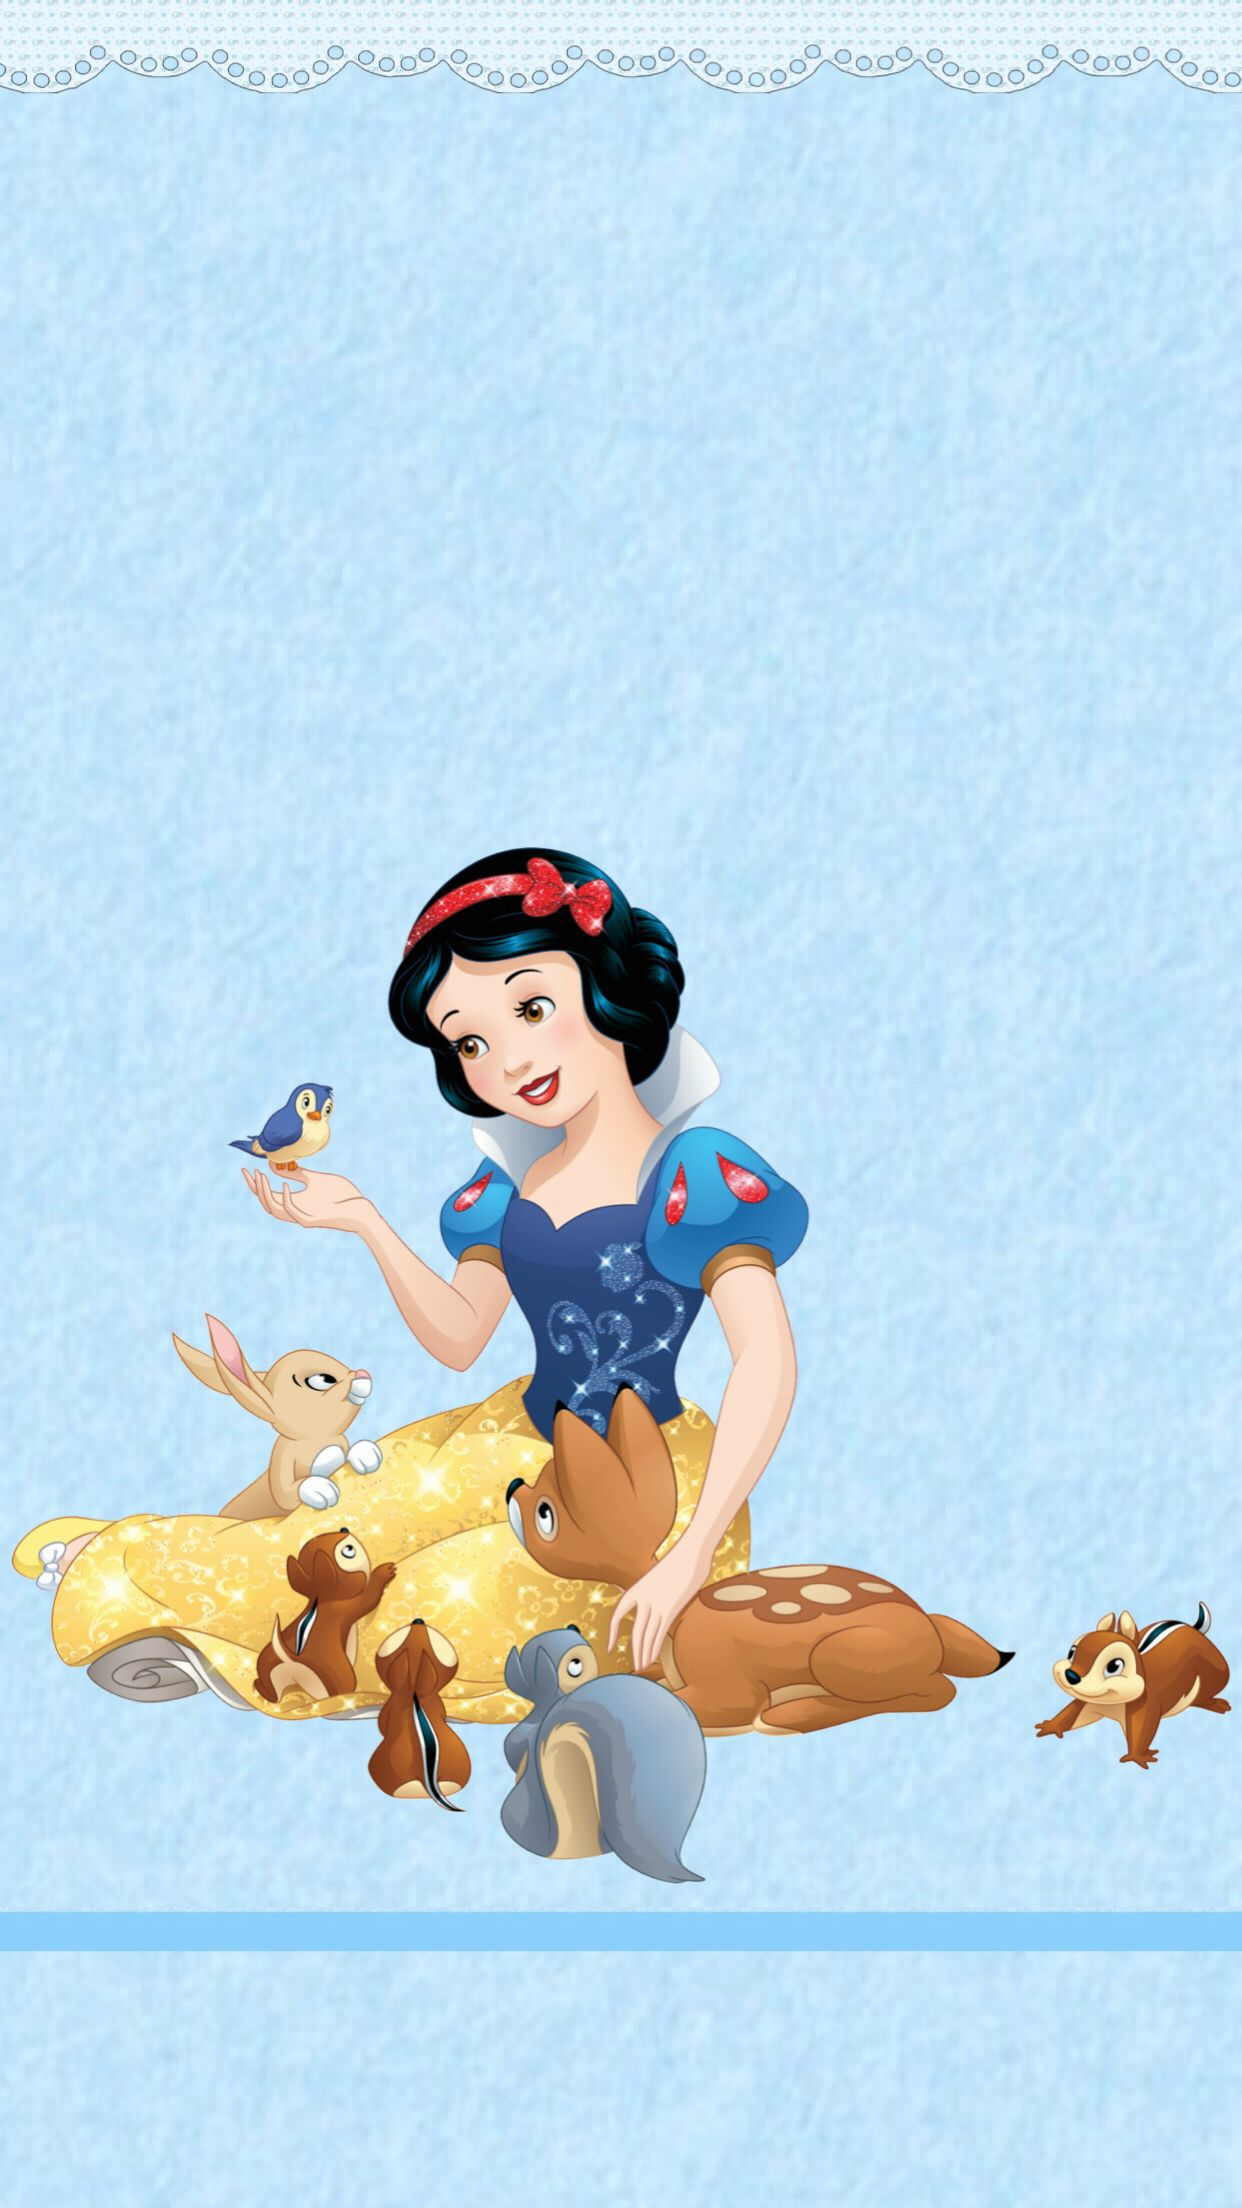 Pin De Kelly Kline En Wallpapers By Me Blancanieves Animales Del Bosque Animales